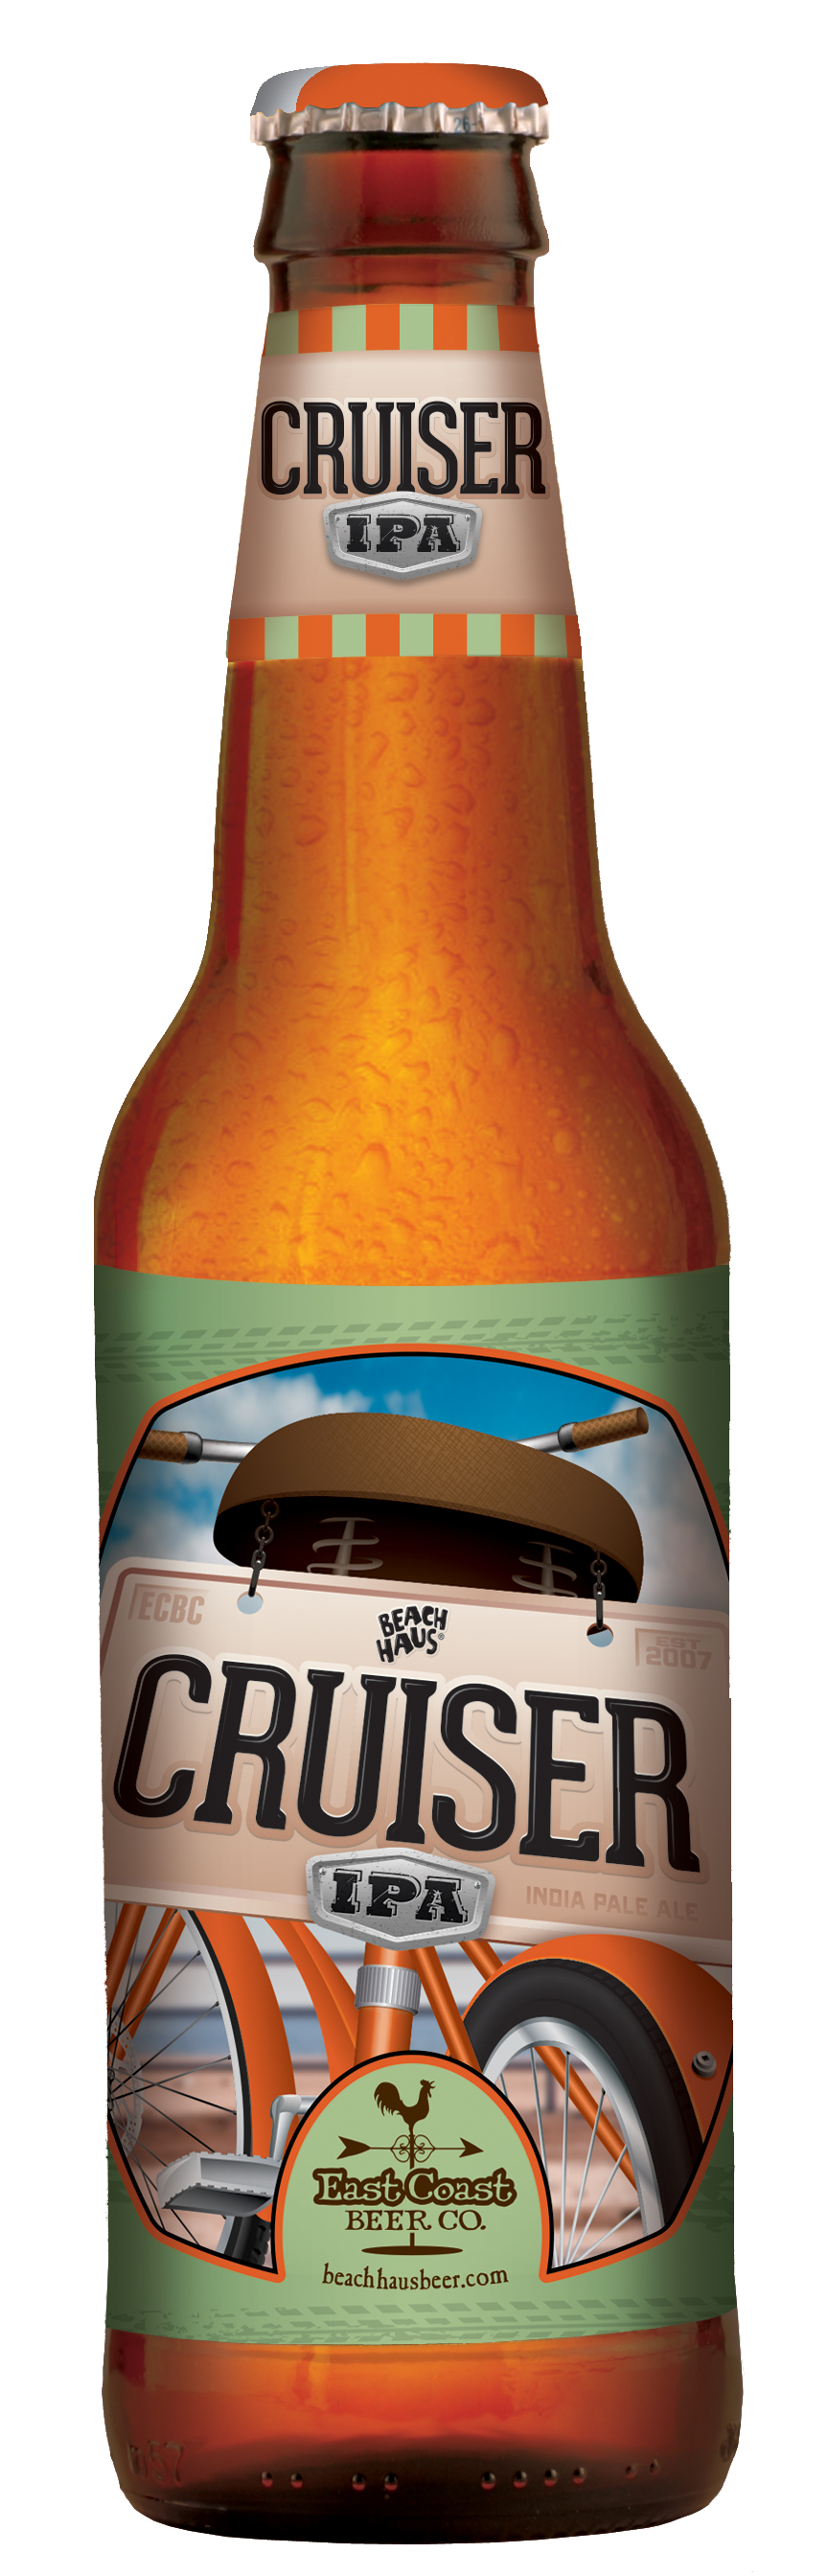 Beach Haus Family of Beers Offers Cruiser IPA for Summer